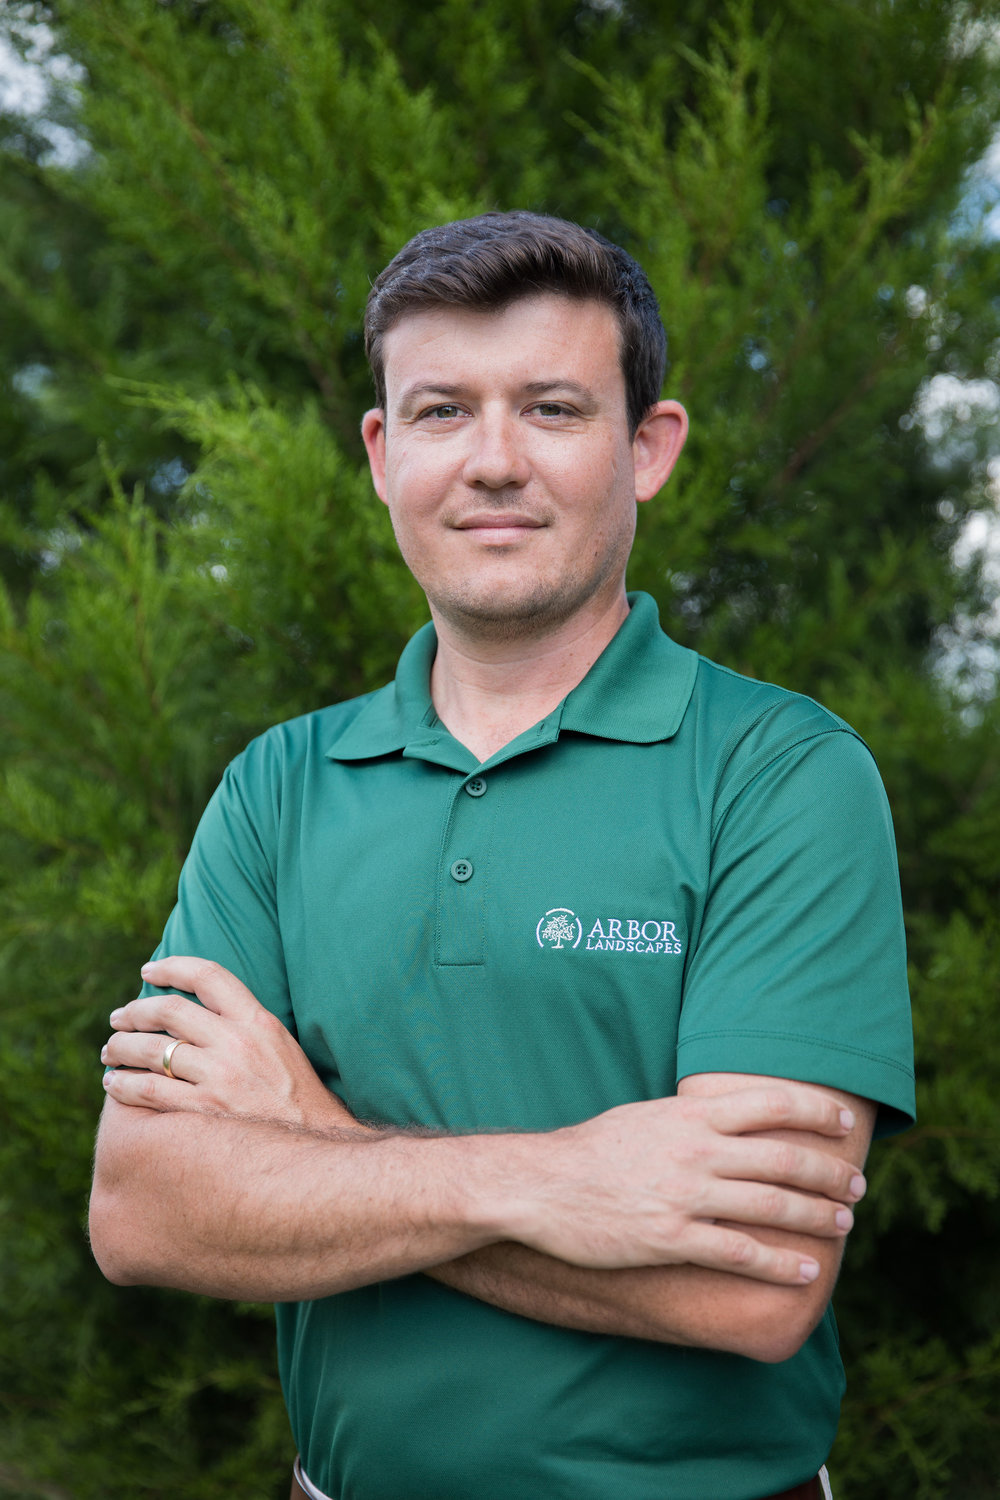 Meet the Owners: - Jake and Alexis founded Arbor Landscapes in 2013. Jake is originally from Sebring, FL and holds a business degree from Florida State University. He grew up mowing lawns in his neighborhood and continued to do so through college. His passion for the outdoors and understanding landscaping ultimately led him to Arbor Landscapes. His lovely wife Alexis grew up in the area and graduated from the University of Florida with a degree in advertising. They enjoy boating and kayaking in the Bay, eating at local restaurants, and catching sunsets with their goldendoodle Olive.Jake and Alexis take pride in serving the community and growing their family here. They are active members of the Ringling Museum of Art, Marie Selby Botanical Gardens, Junior League of Sarasota (Alexis), Sertoma Club of Greater Sarasota (Jake) and BNI-Past Chapter President (Jake).